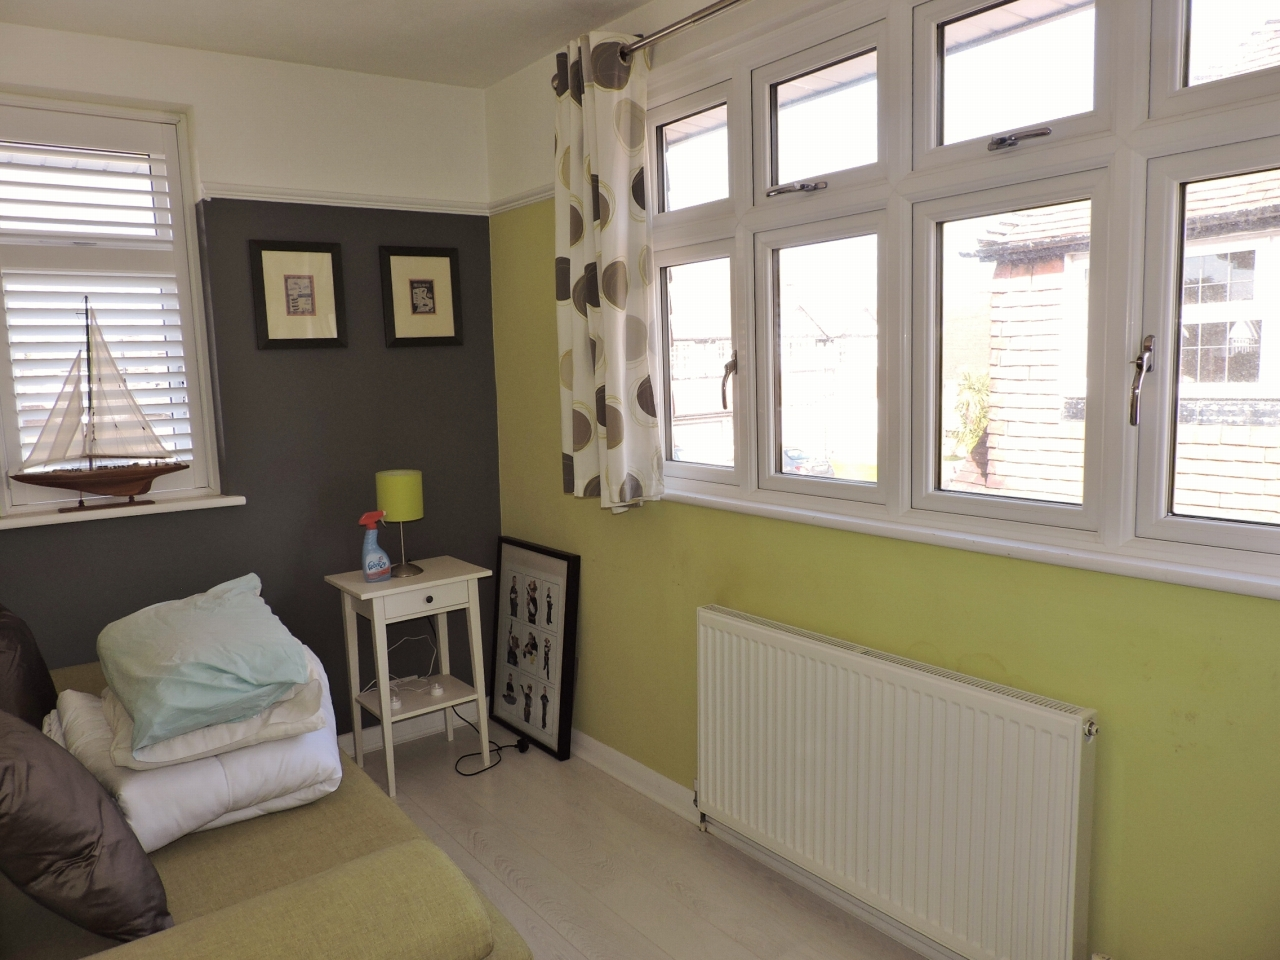 3 bedroom semi-detached house SSTC in New Malden - Photograph 15